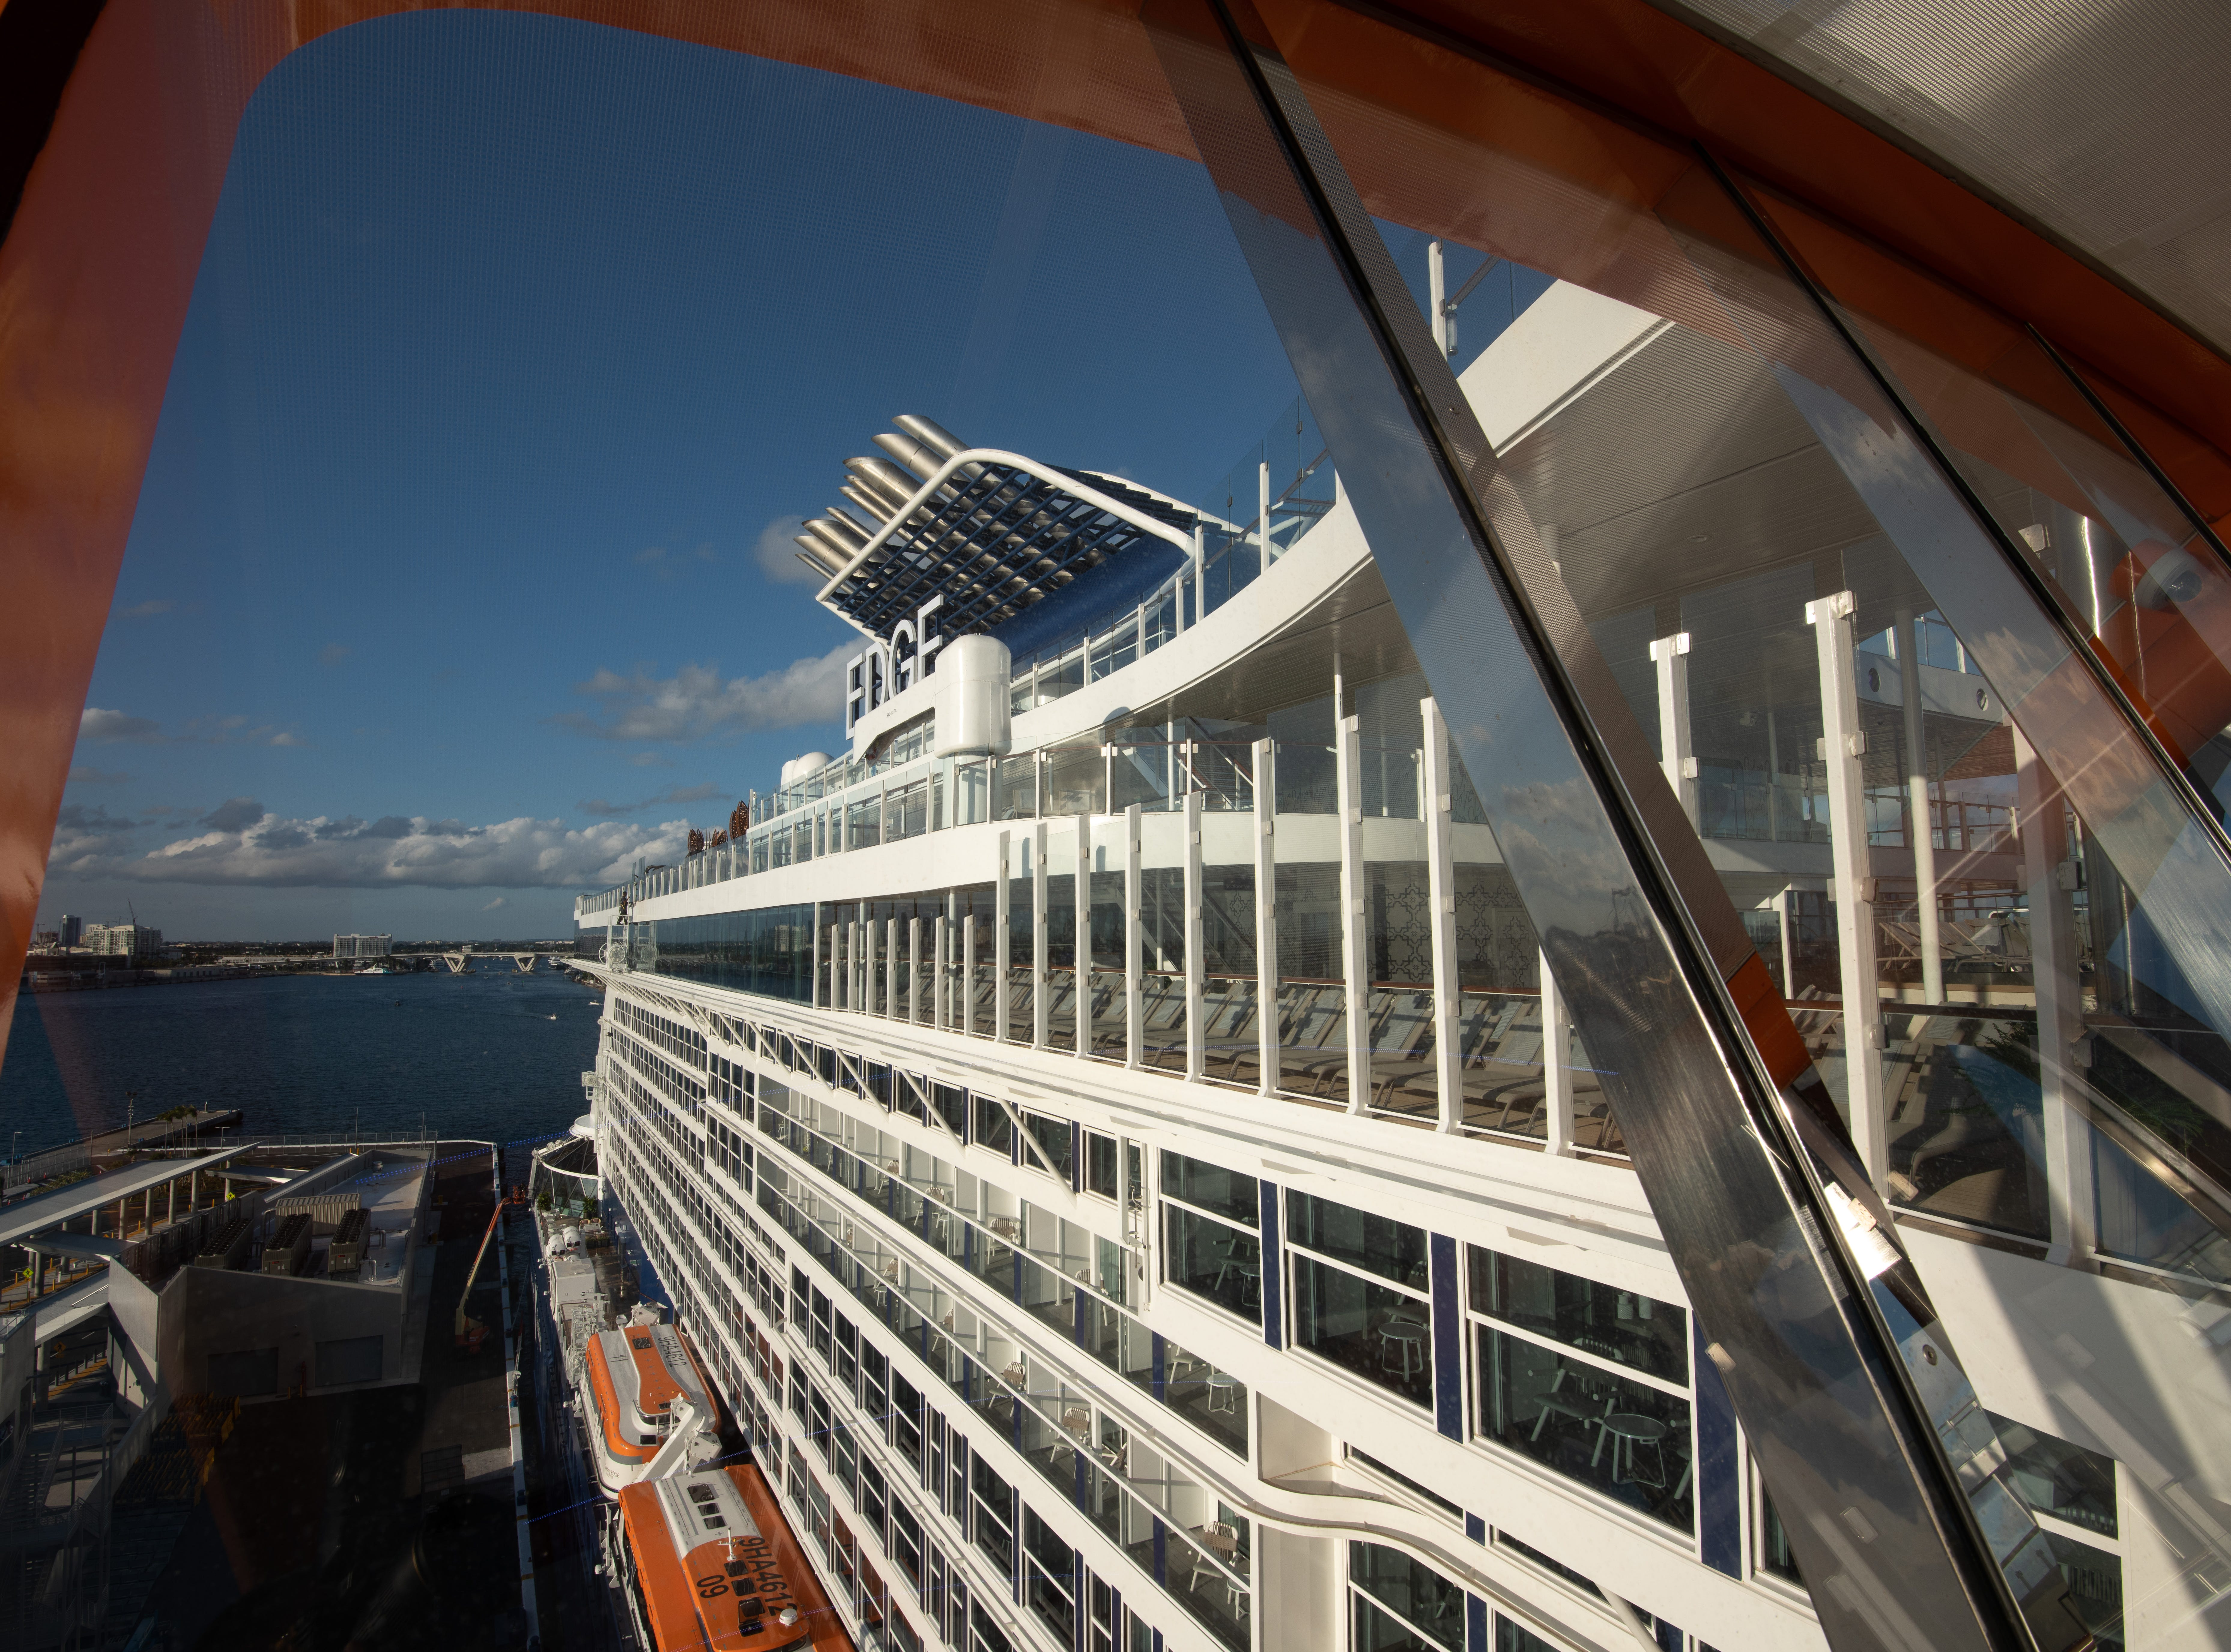 Passengers lounging on the Magic Carpet have stunning views back at the ship.